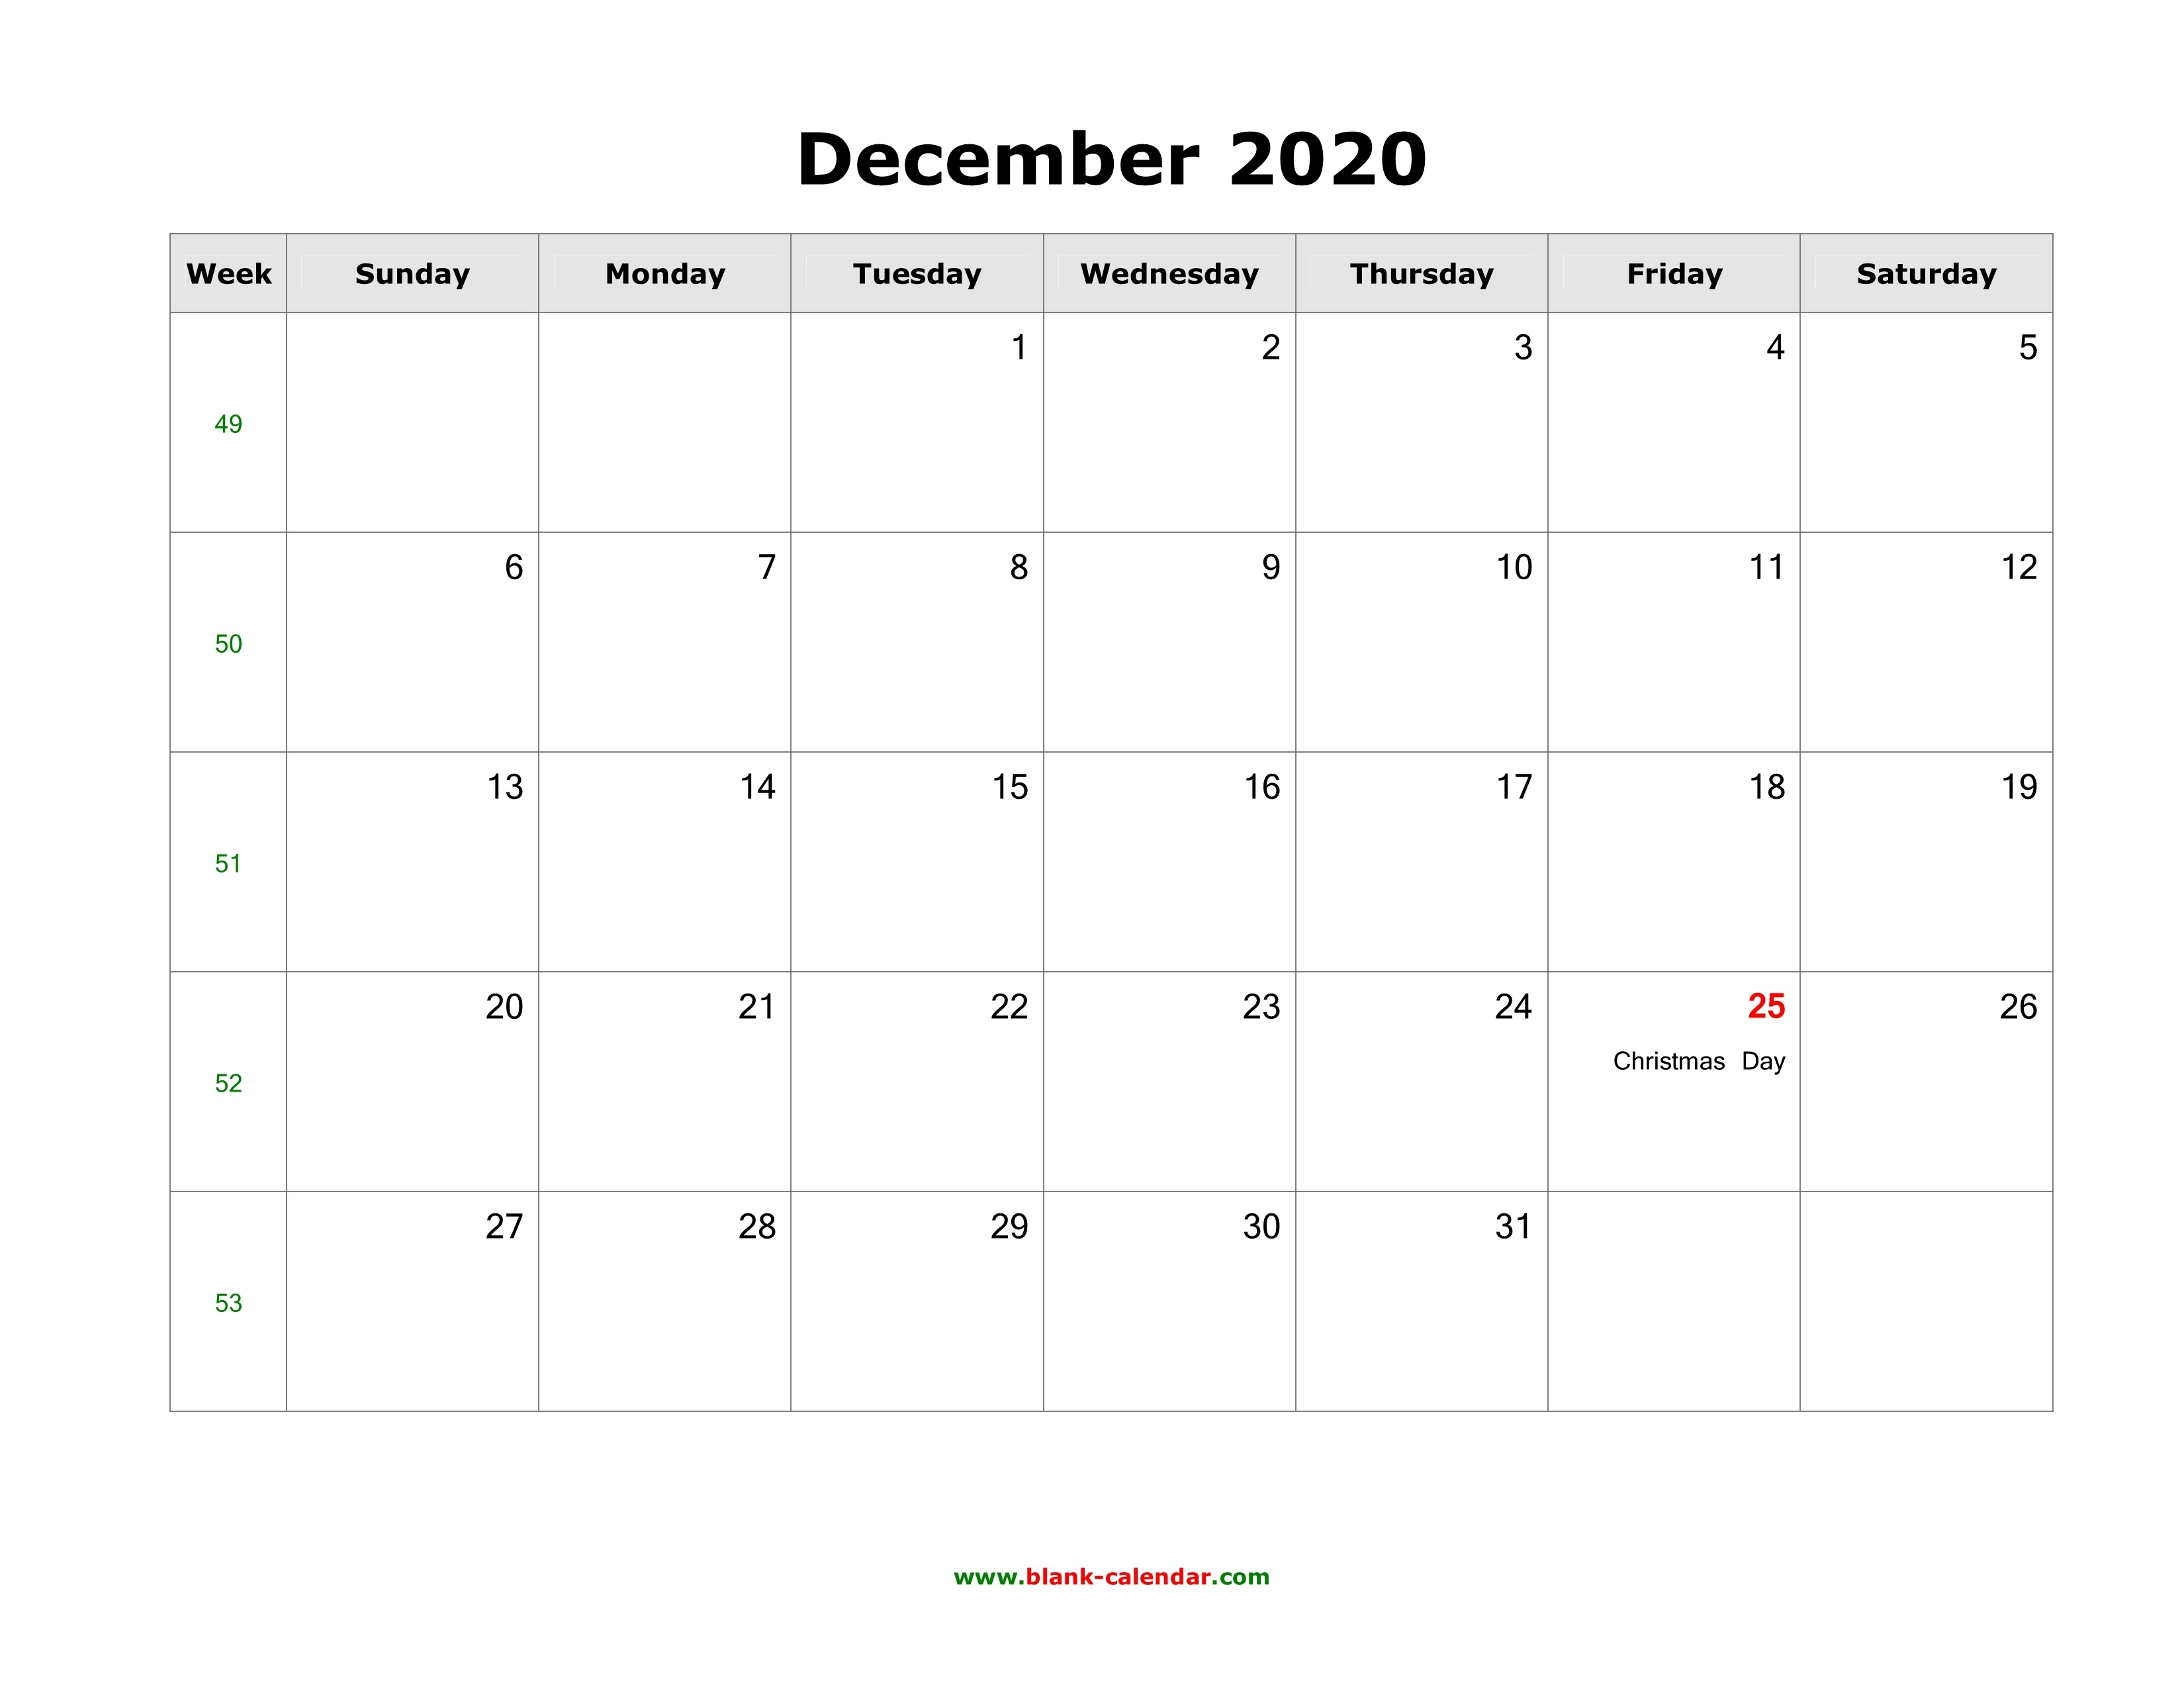 Download December 2020 Blank Calendar With Us Holidays (Horizontal)_A Blank Calendar For December 2020